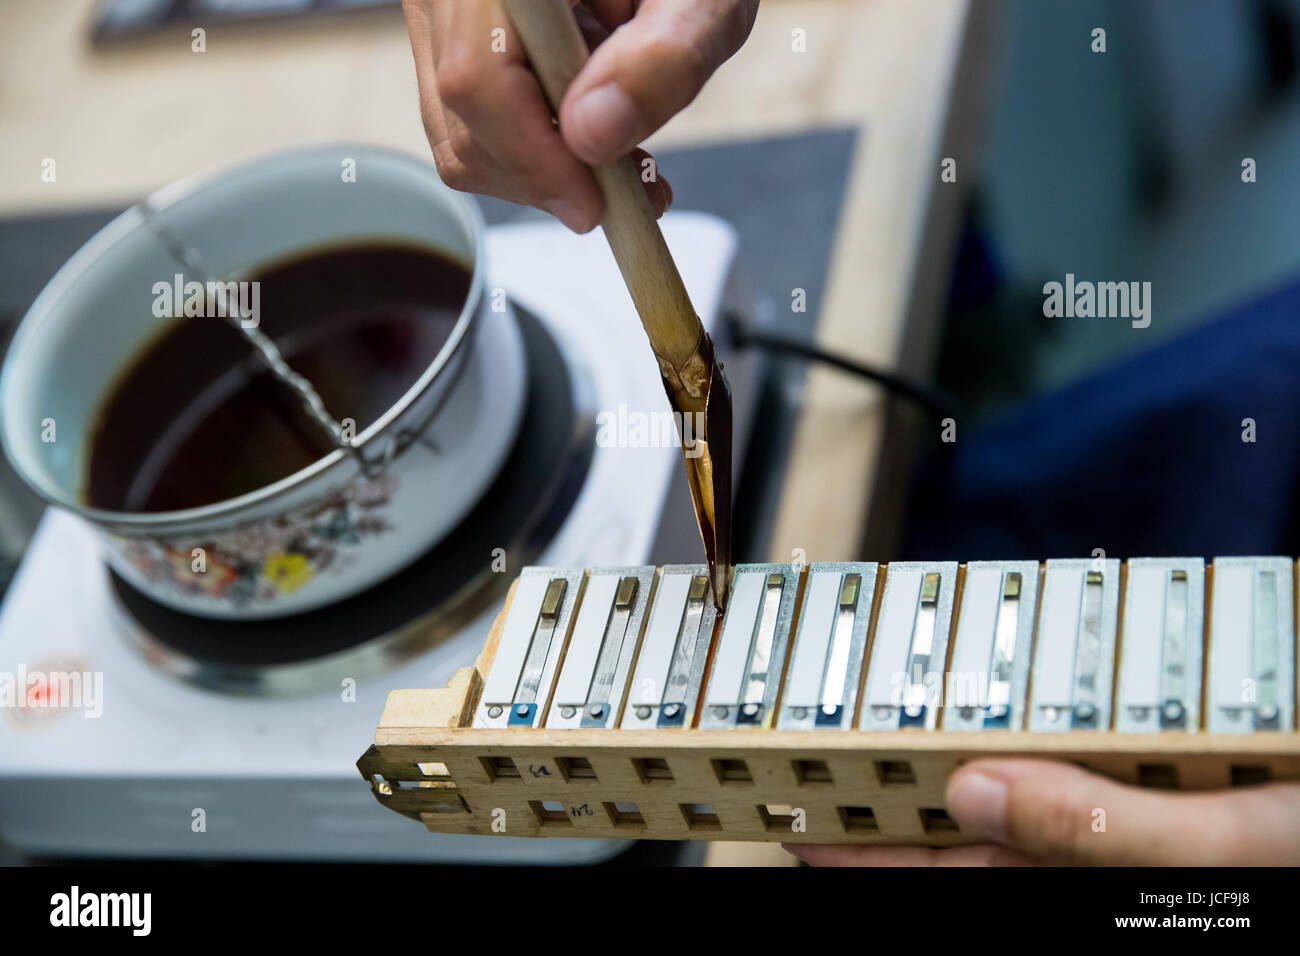 Nuremberg, Germany. 12th June, 2017. Simone Wiech, restorer of accordion instruments, waxes the valves of an accordion - Stock Image